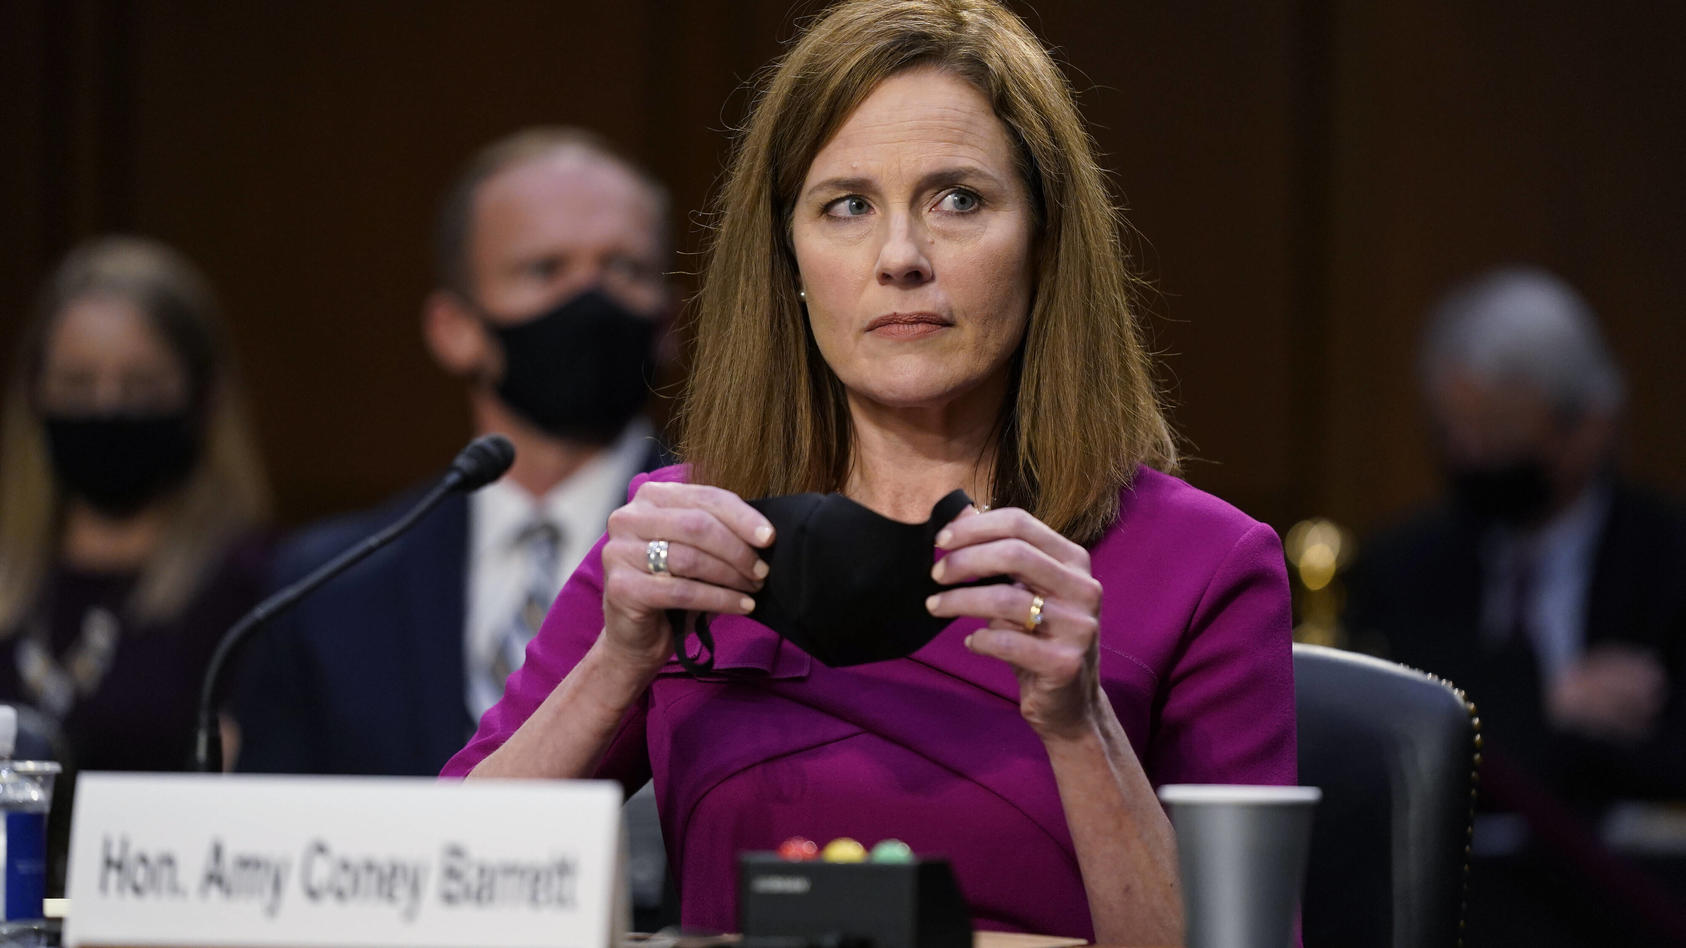 Supreme Court nominee Judge Amy Coney Barret prepares to speak during her confirmation hearing before the Senate Judici